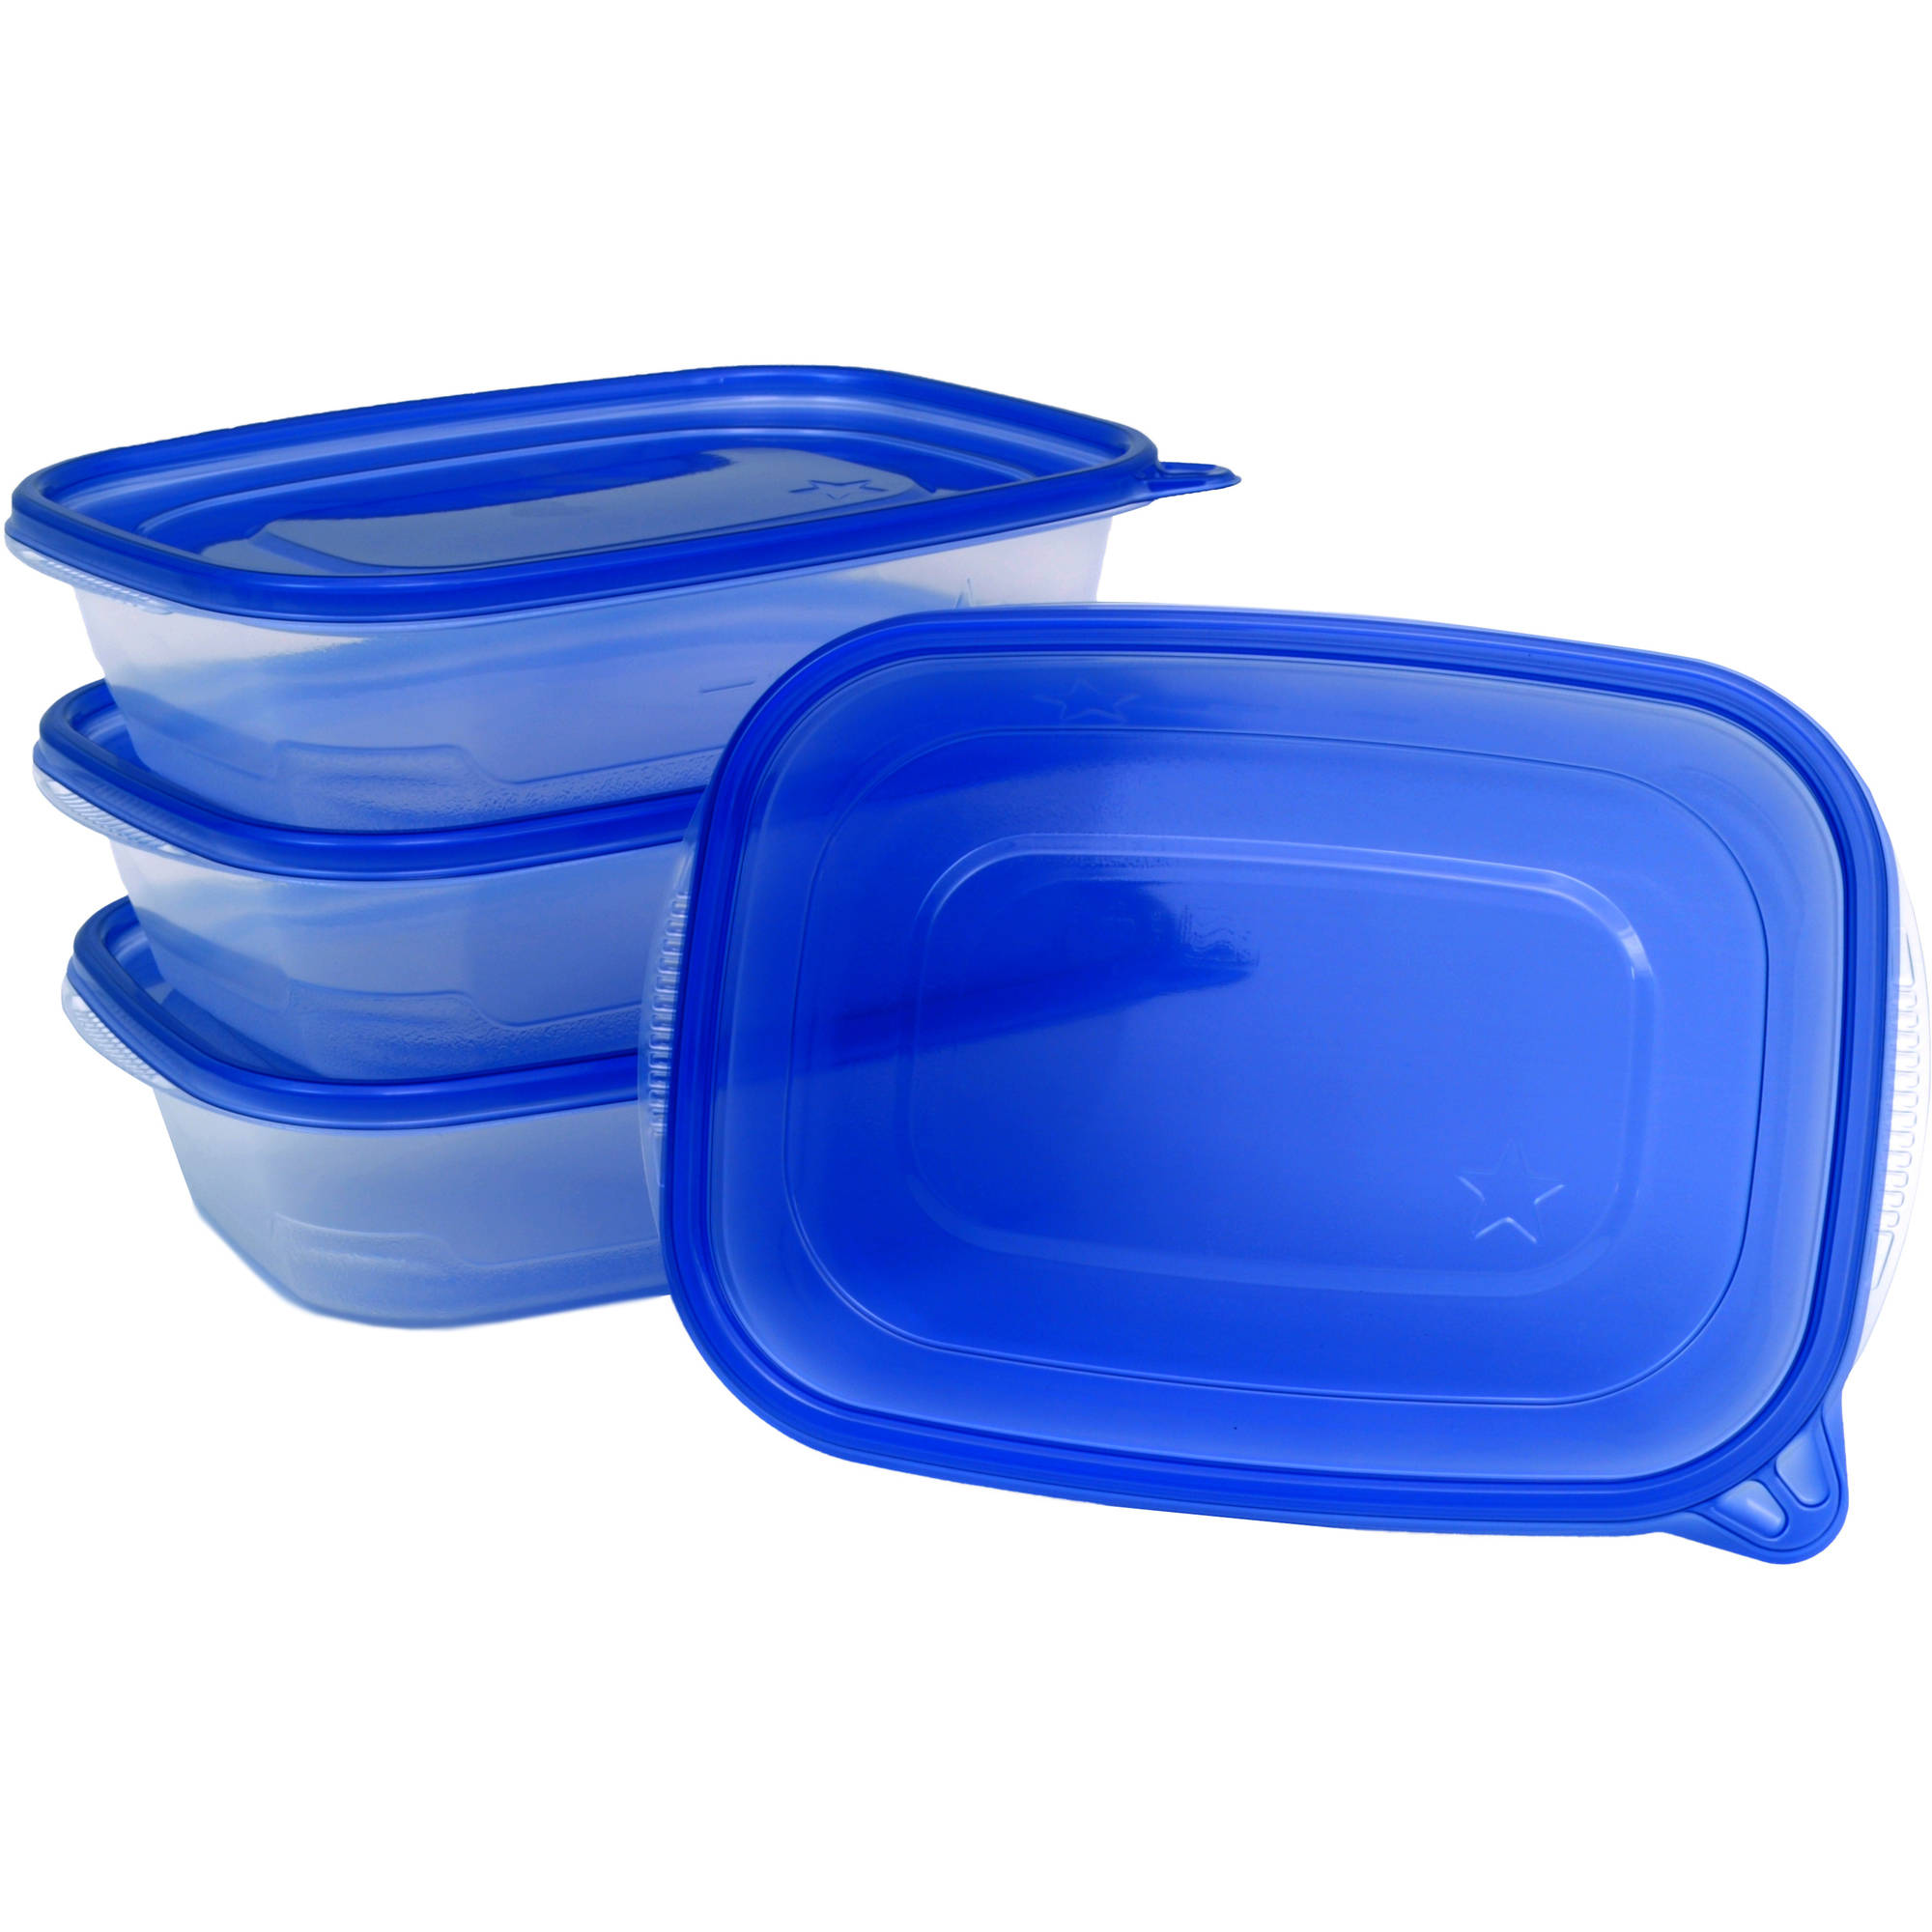 Great Value Large Entree Storage Containers, 32 fl oz, 4 count